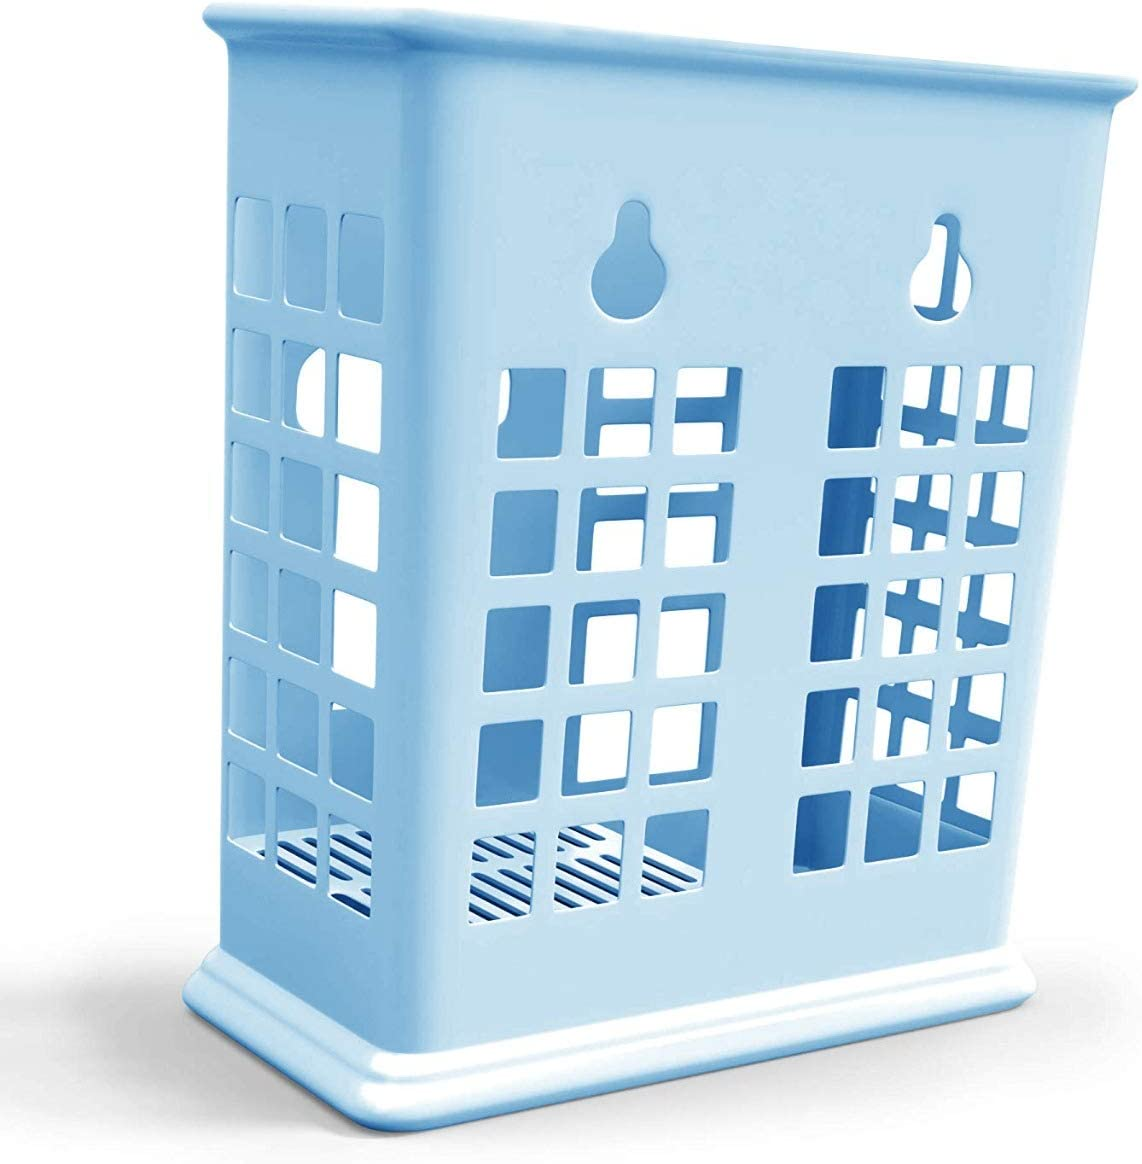 Chopsticks and Straws Holder Basket for Dishwashers - Hold Chopsticks, Straws, and other Utensils Without Falling Through (Blue)